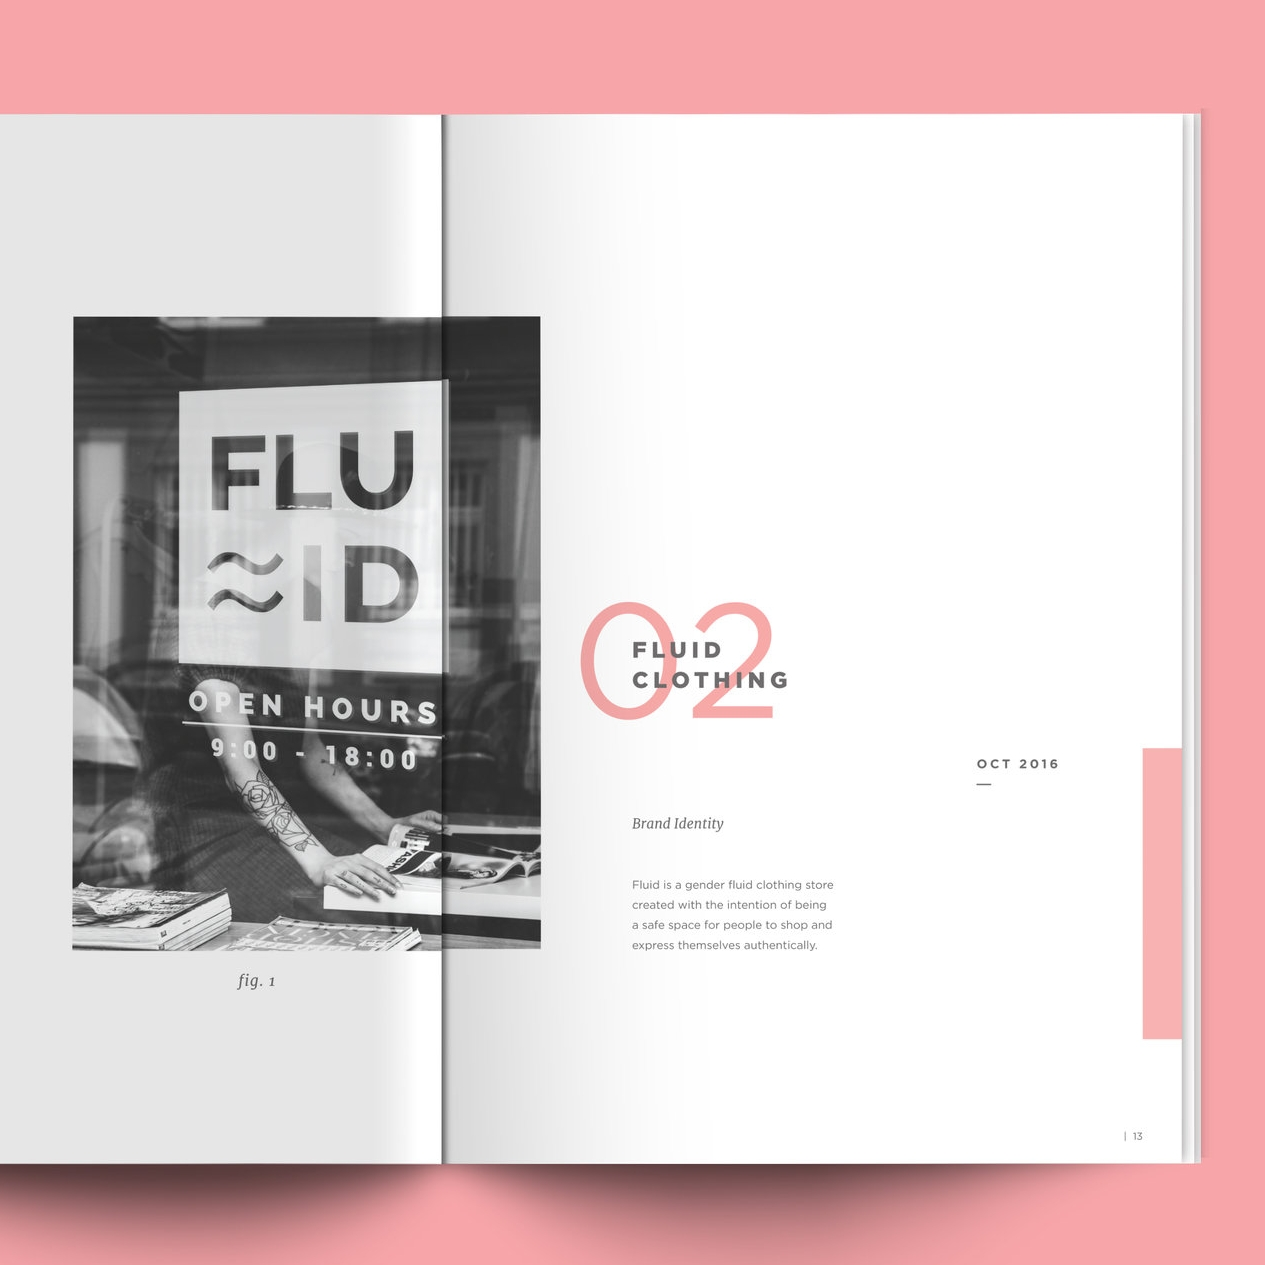 Publication   Don't waste you time struggling to design and format your documents! I have experience designing high-end look books and documents for personal and professional use. Professional CV's are also a common request.